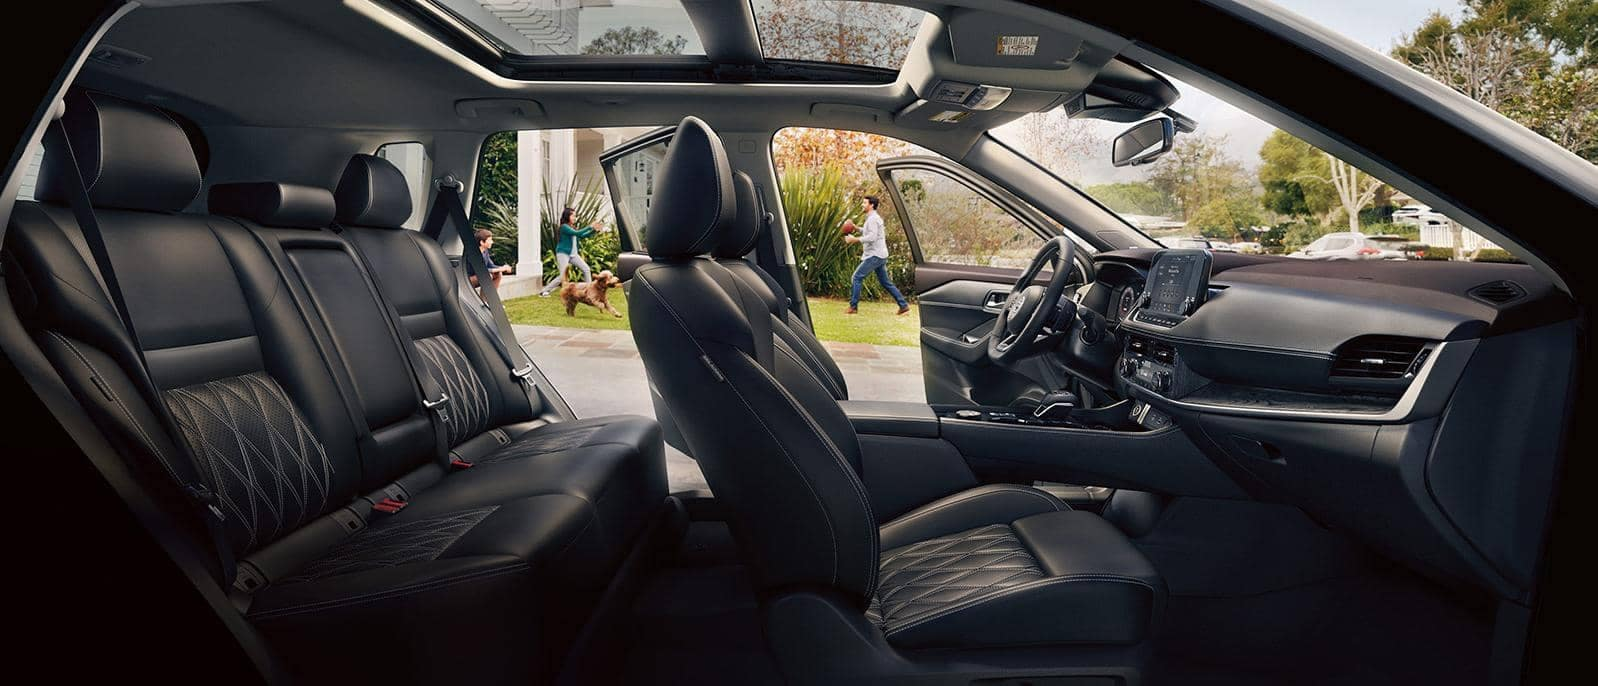 2021 Nissan Rogue Interior Side View